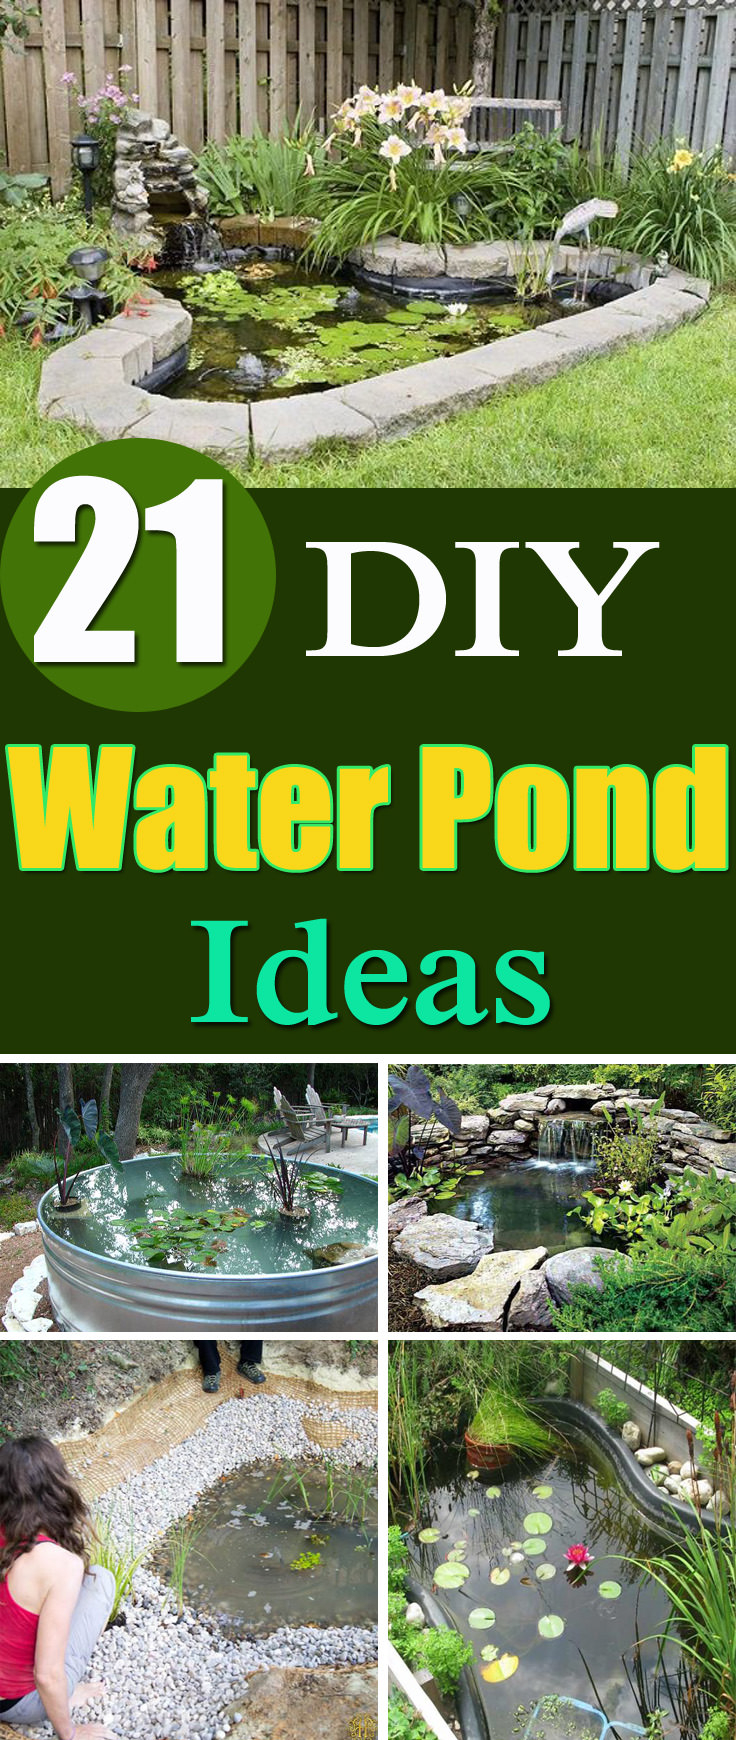 21 Diy Water Pond Ideas Diy Water Gardens For Backyards Balcony for 14 Genius Concepts of How to Upgrade Small Backyard Pond Ideas